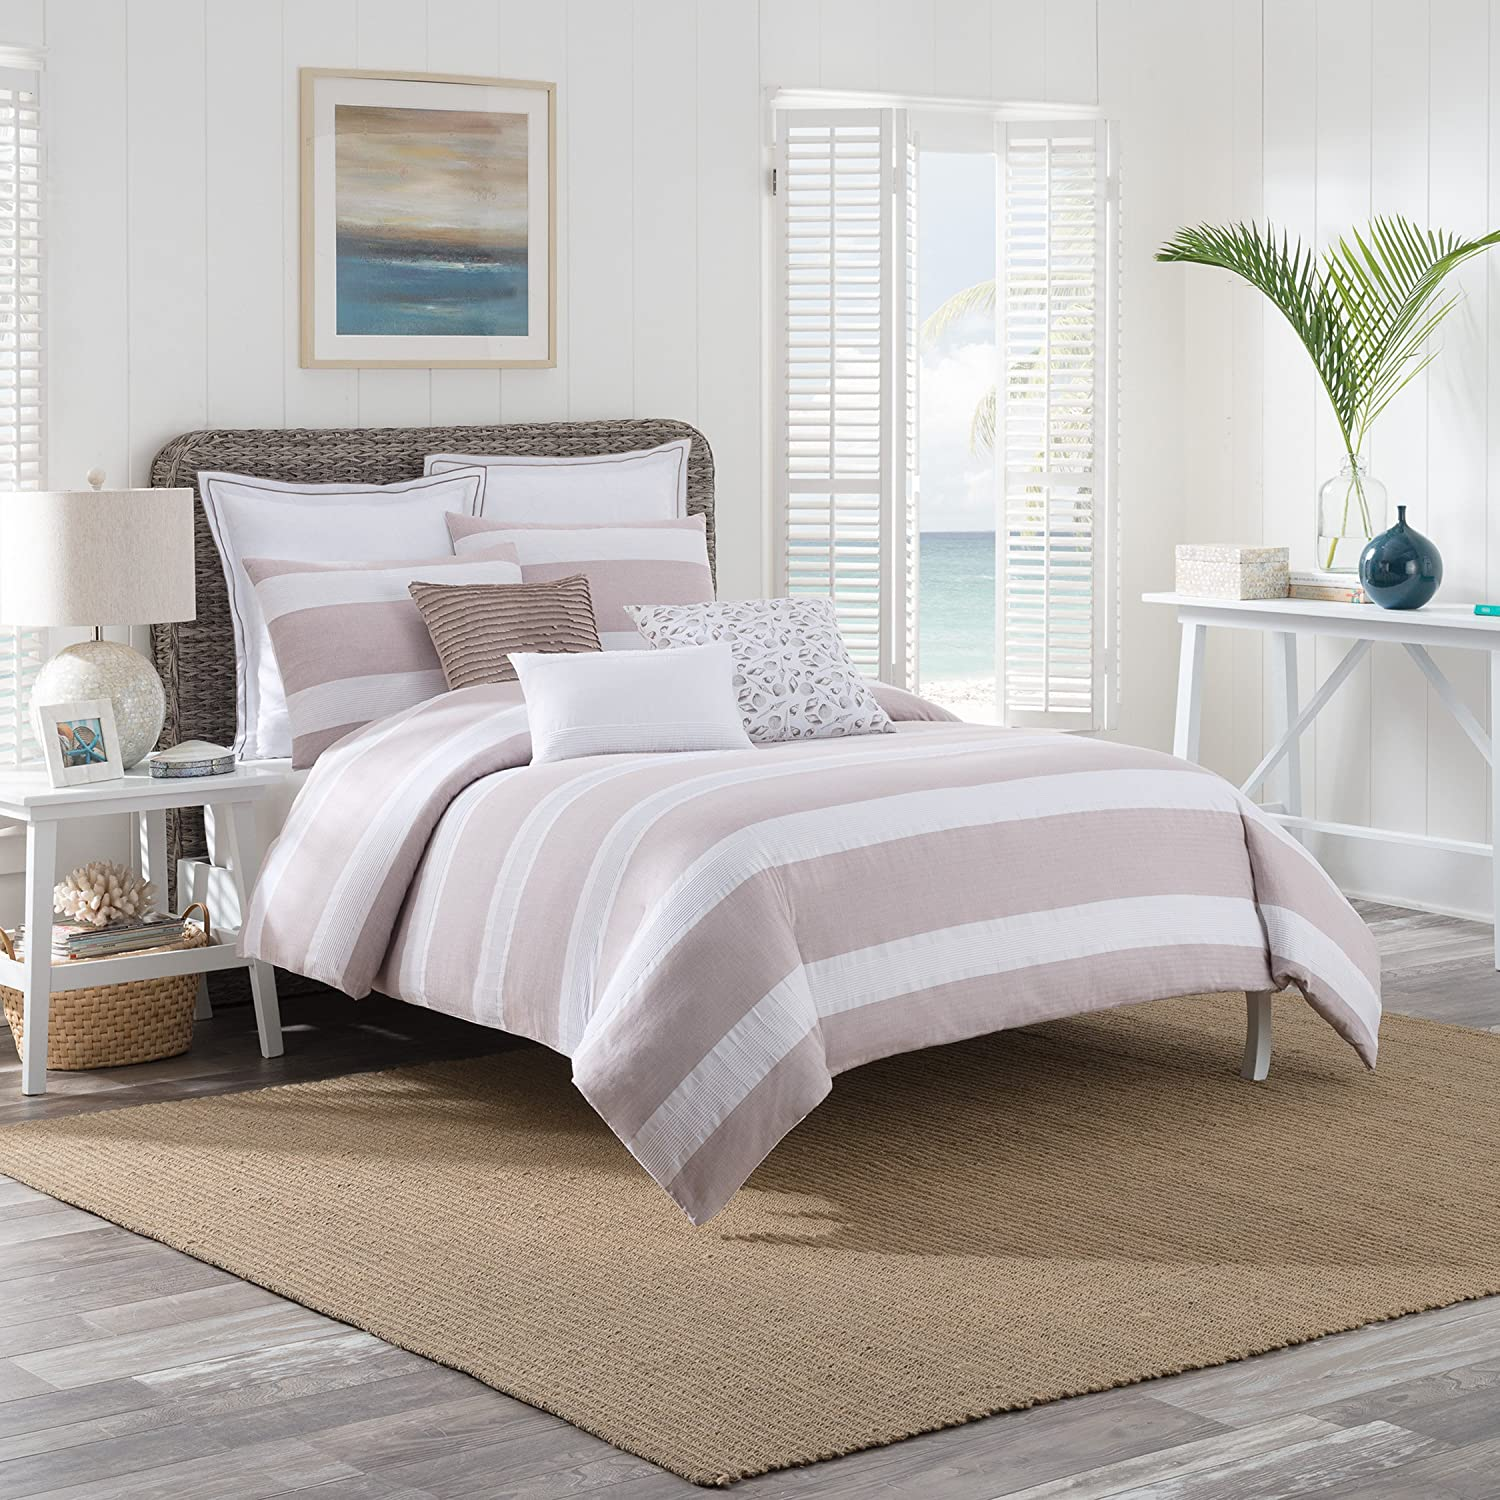 Brielle Montauk Duvet Cover Set Twin